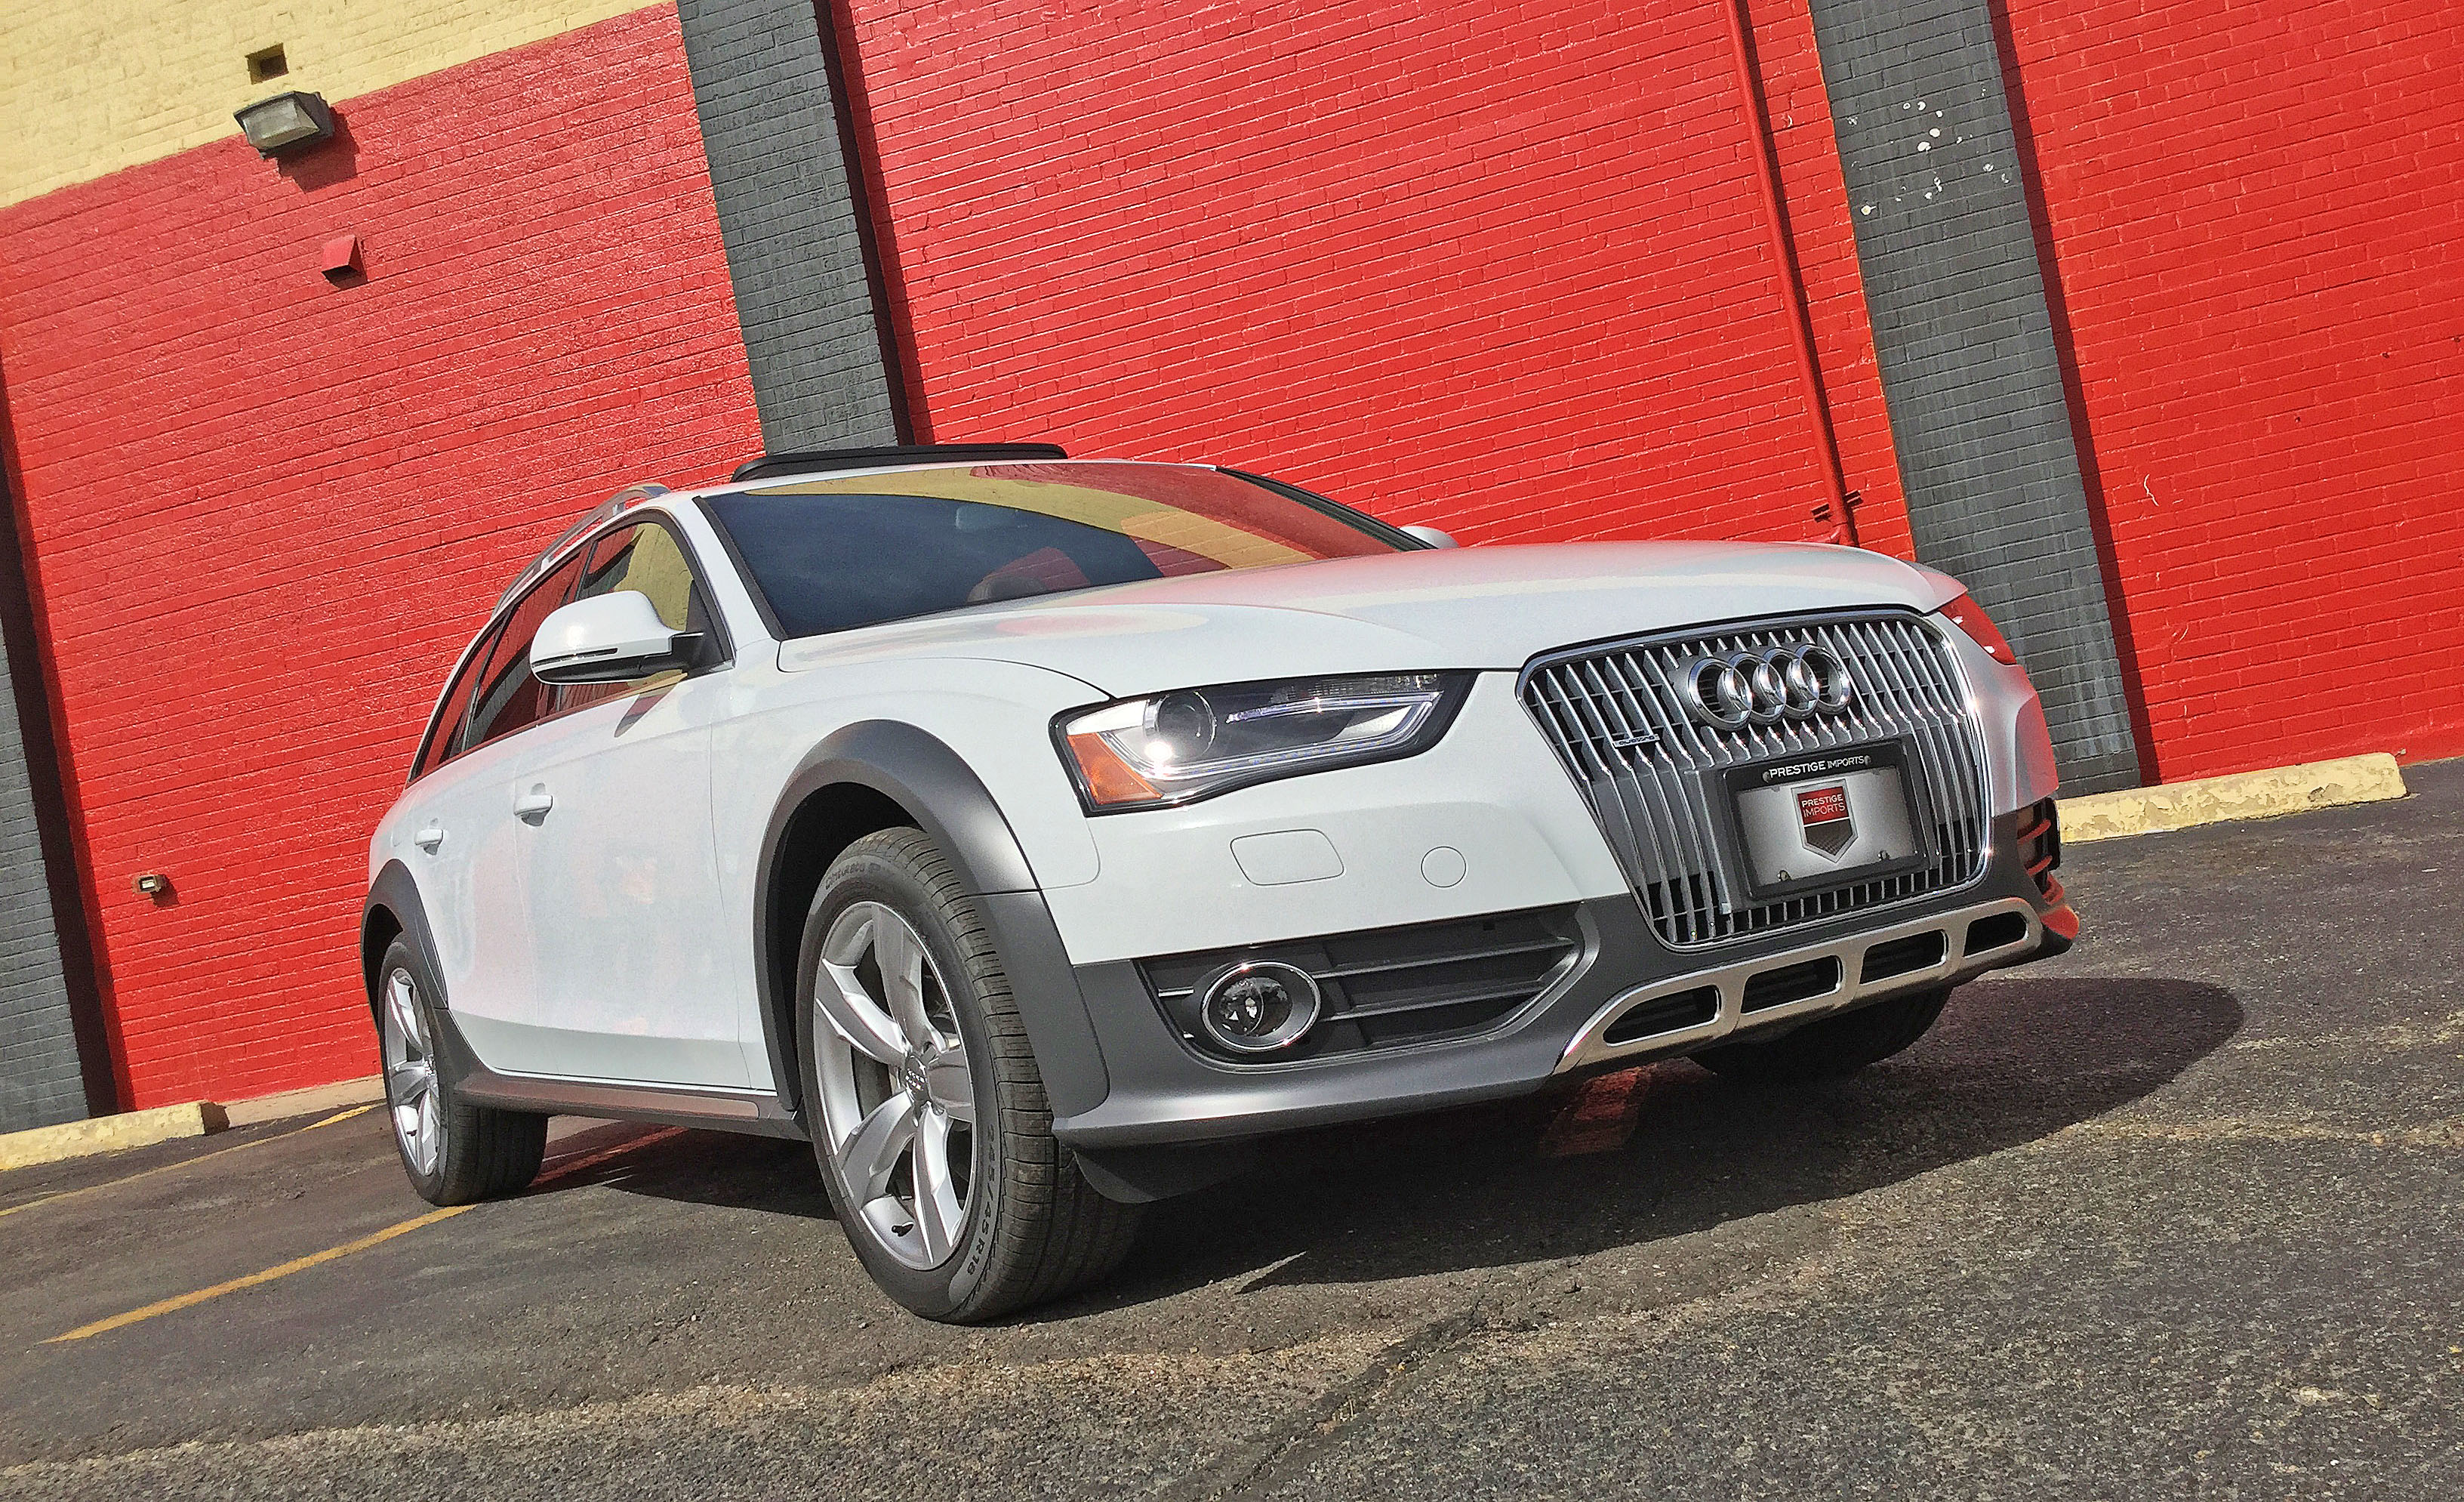 An Audi allroad sits in front of a colorful wall in Denver's Highlands neighborhood